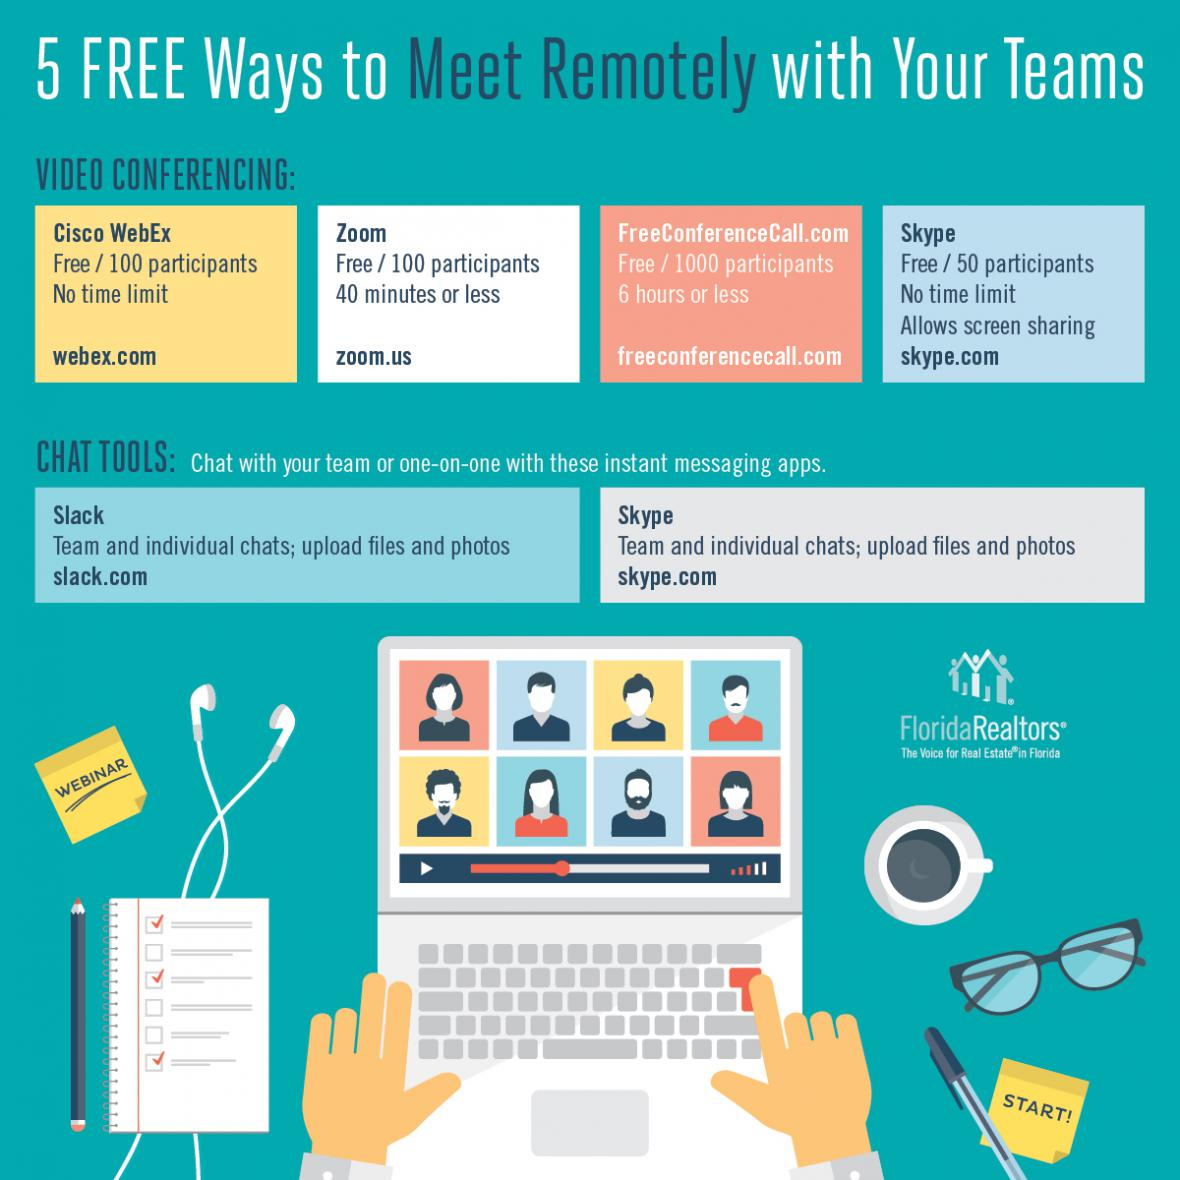 5 Free Ways to Meet Remotely with Your Teams